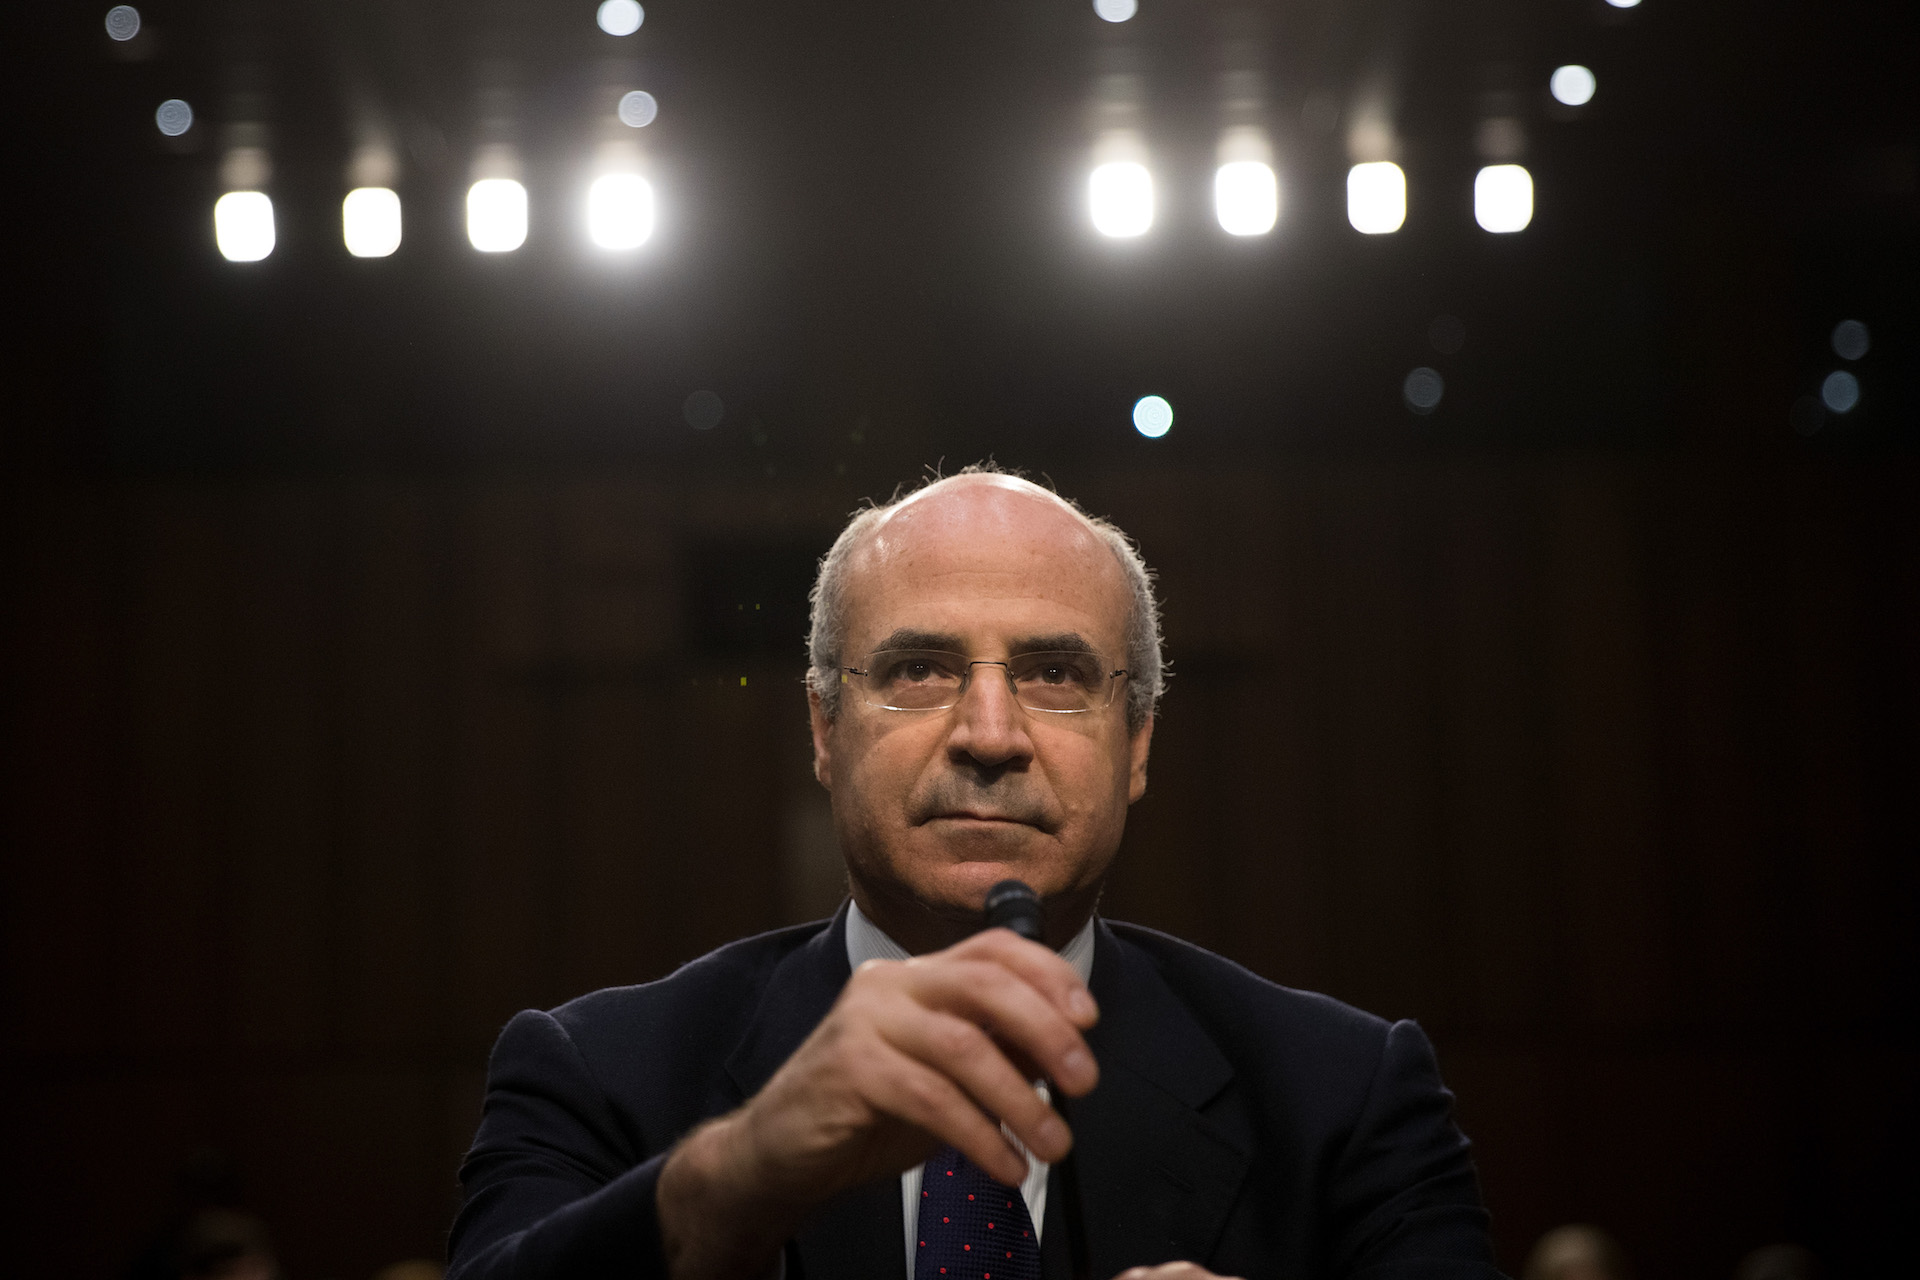 Why did the U.S. just revoke Putin critic Bill Browder's visa?